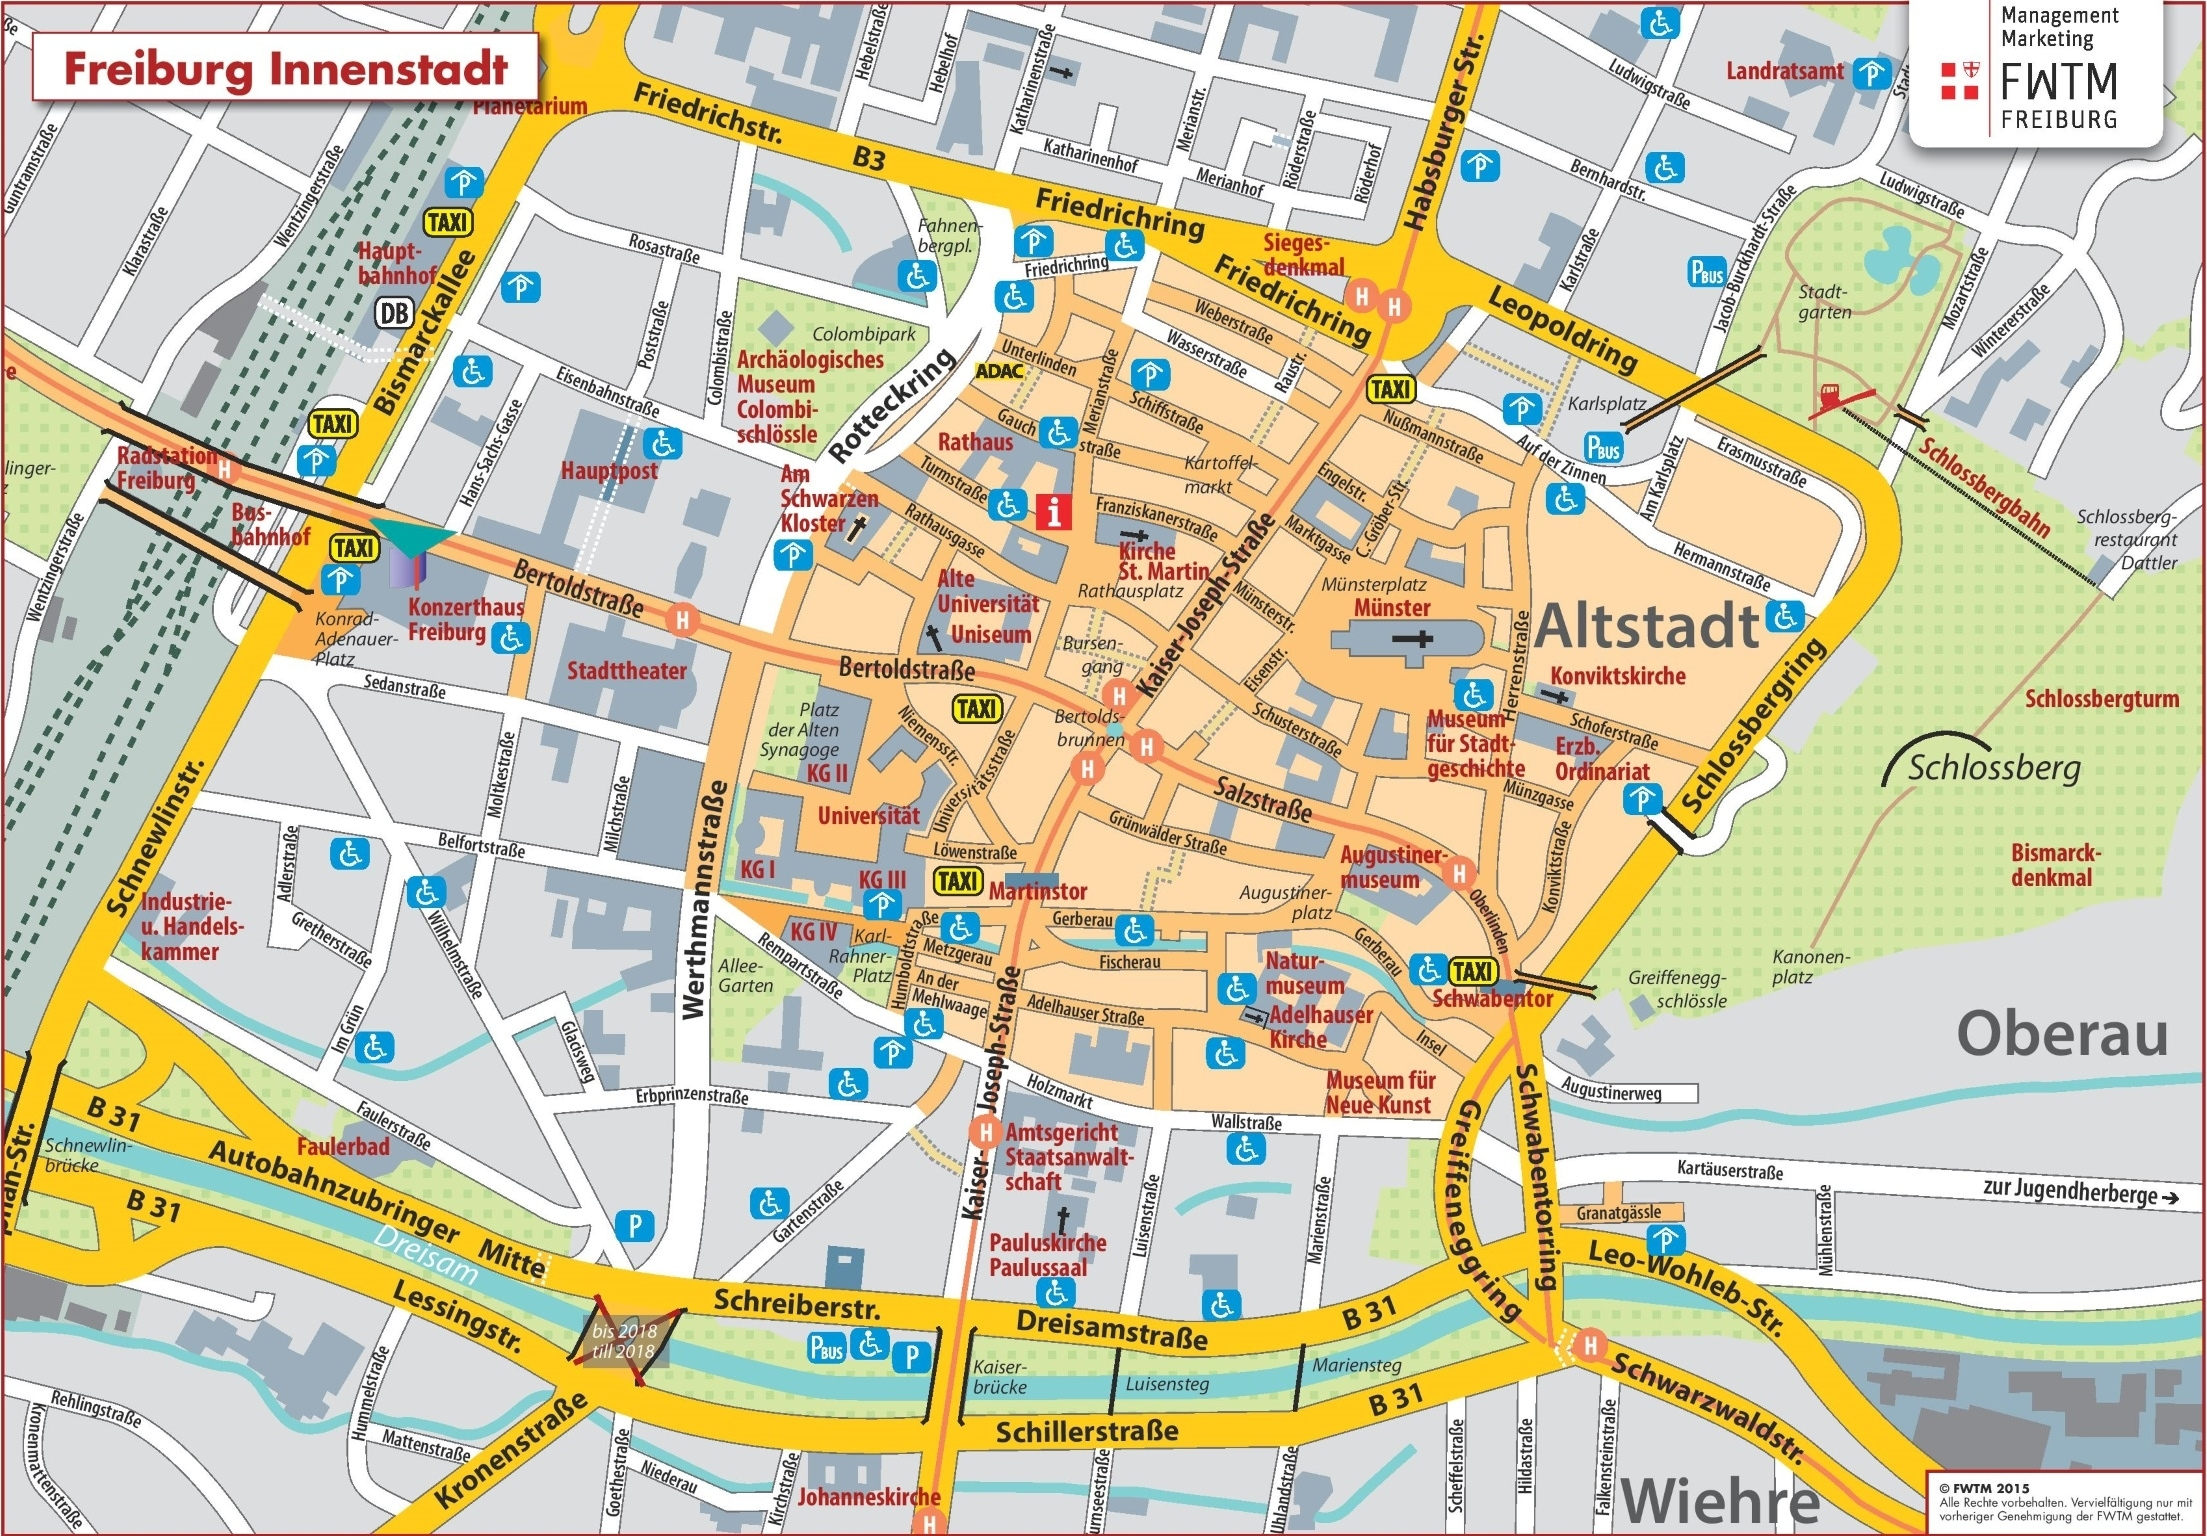 Freiburg City Center Map intended for Map Of Germany Showing Freiburg